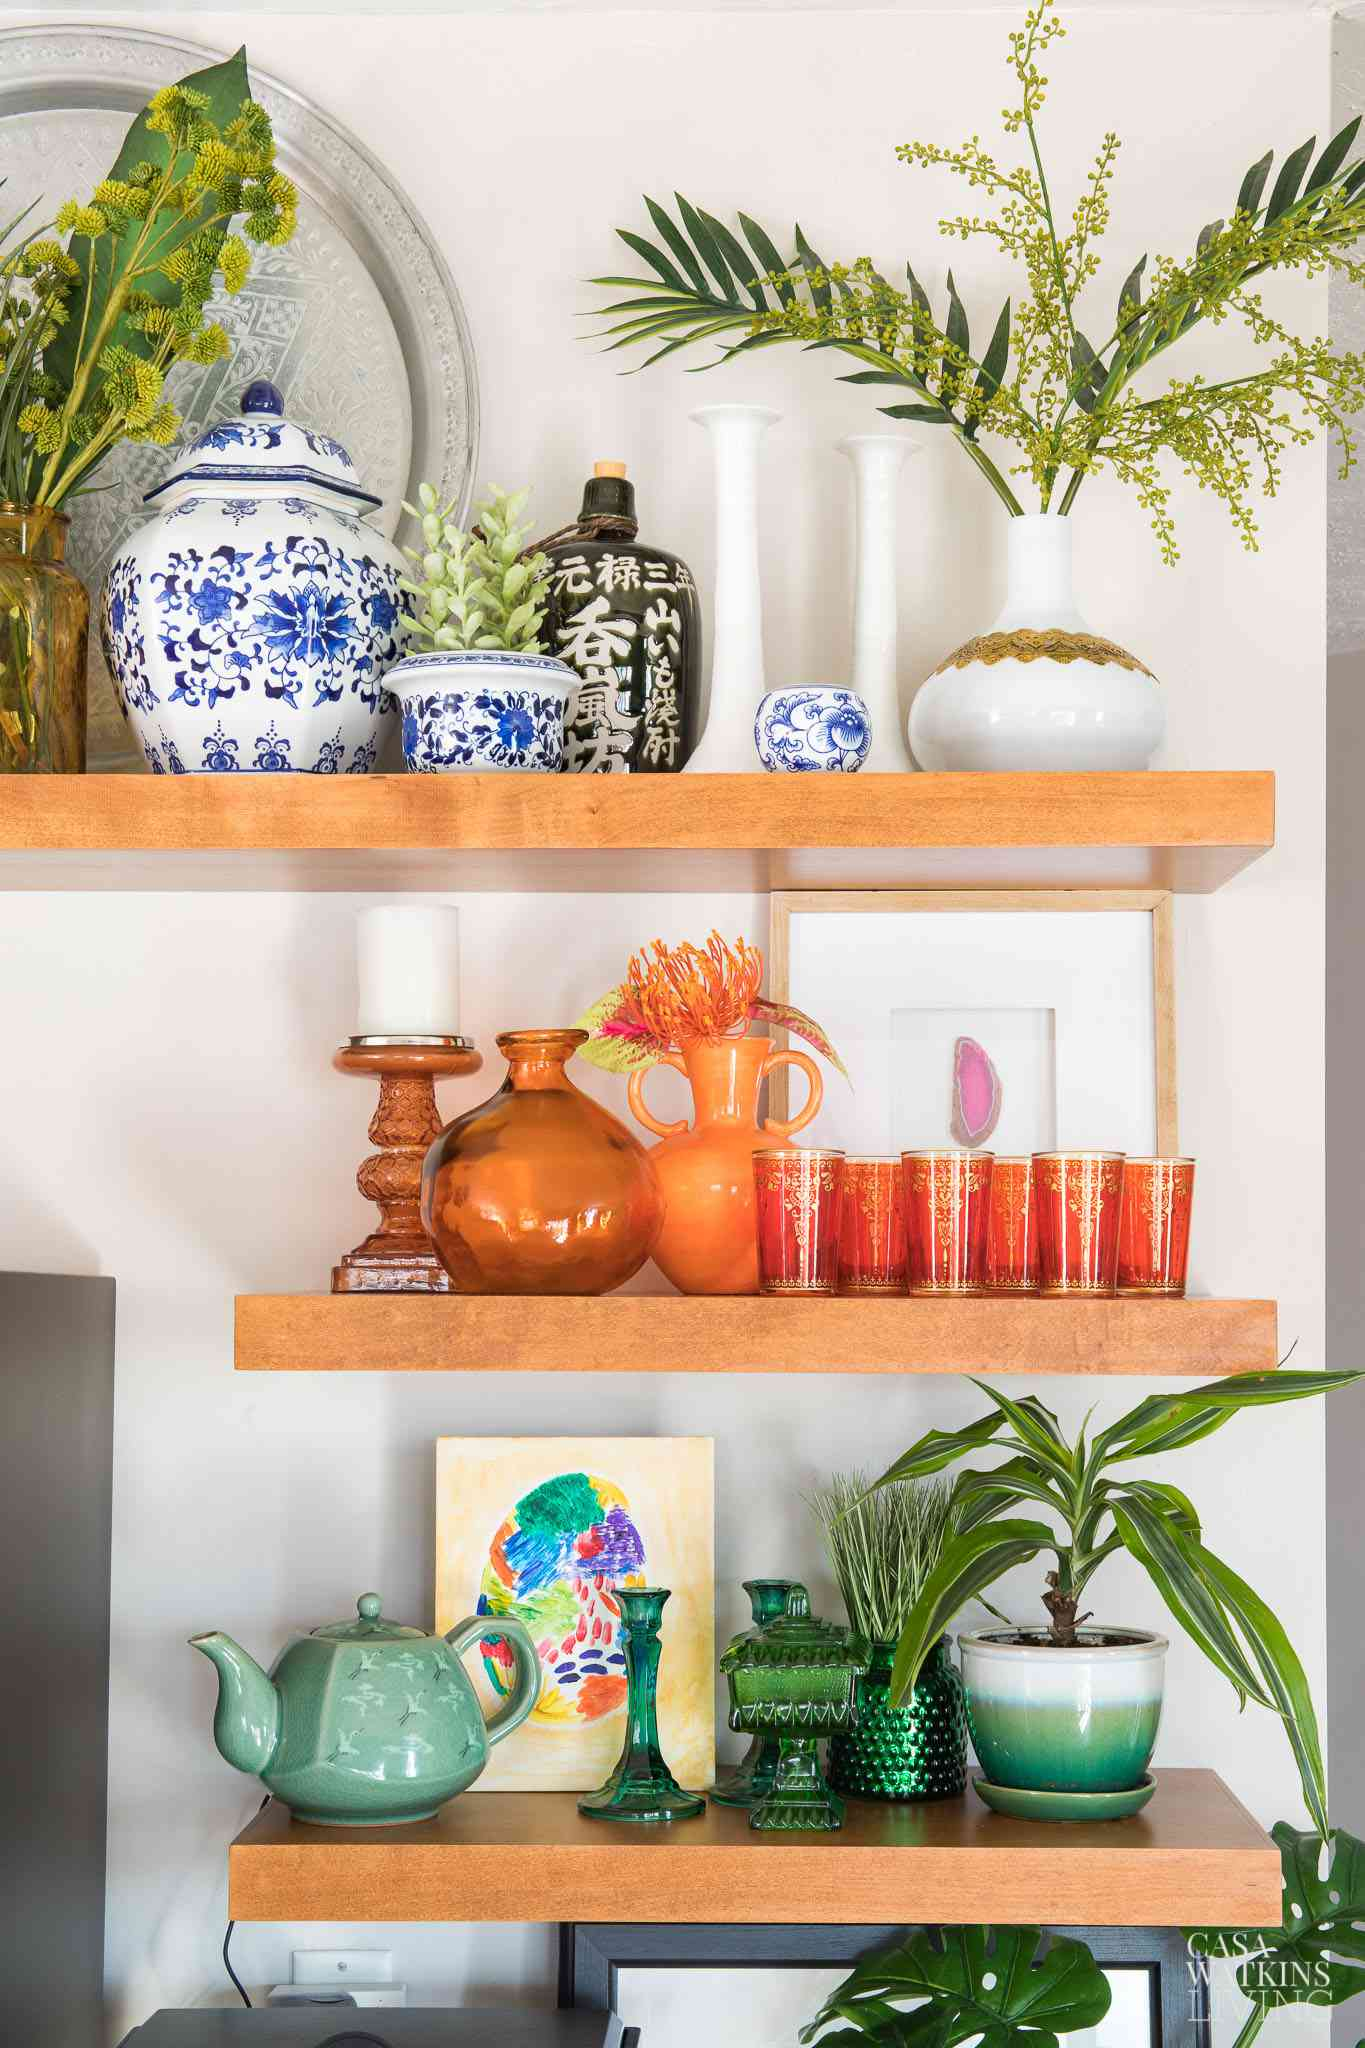 best kitchen ideas - decorative open shelving with colored glass collections